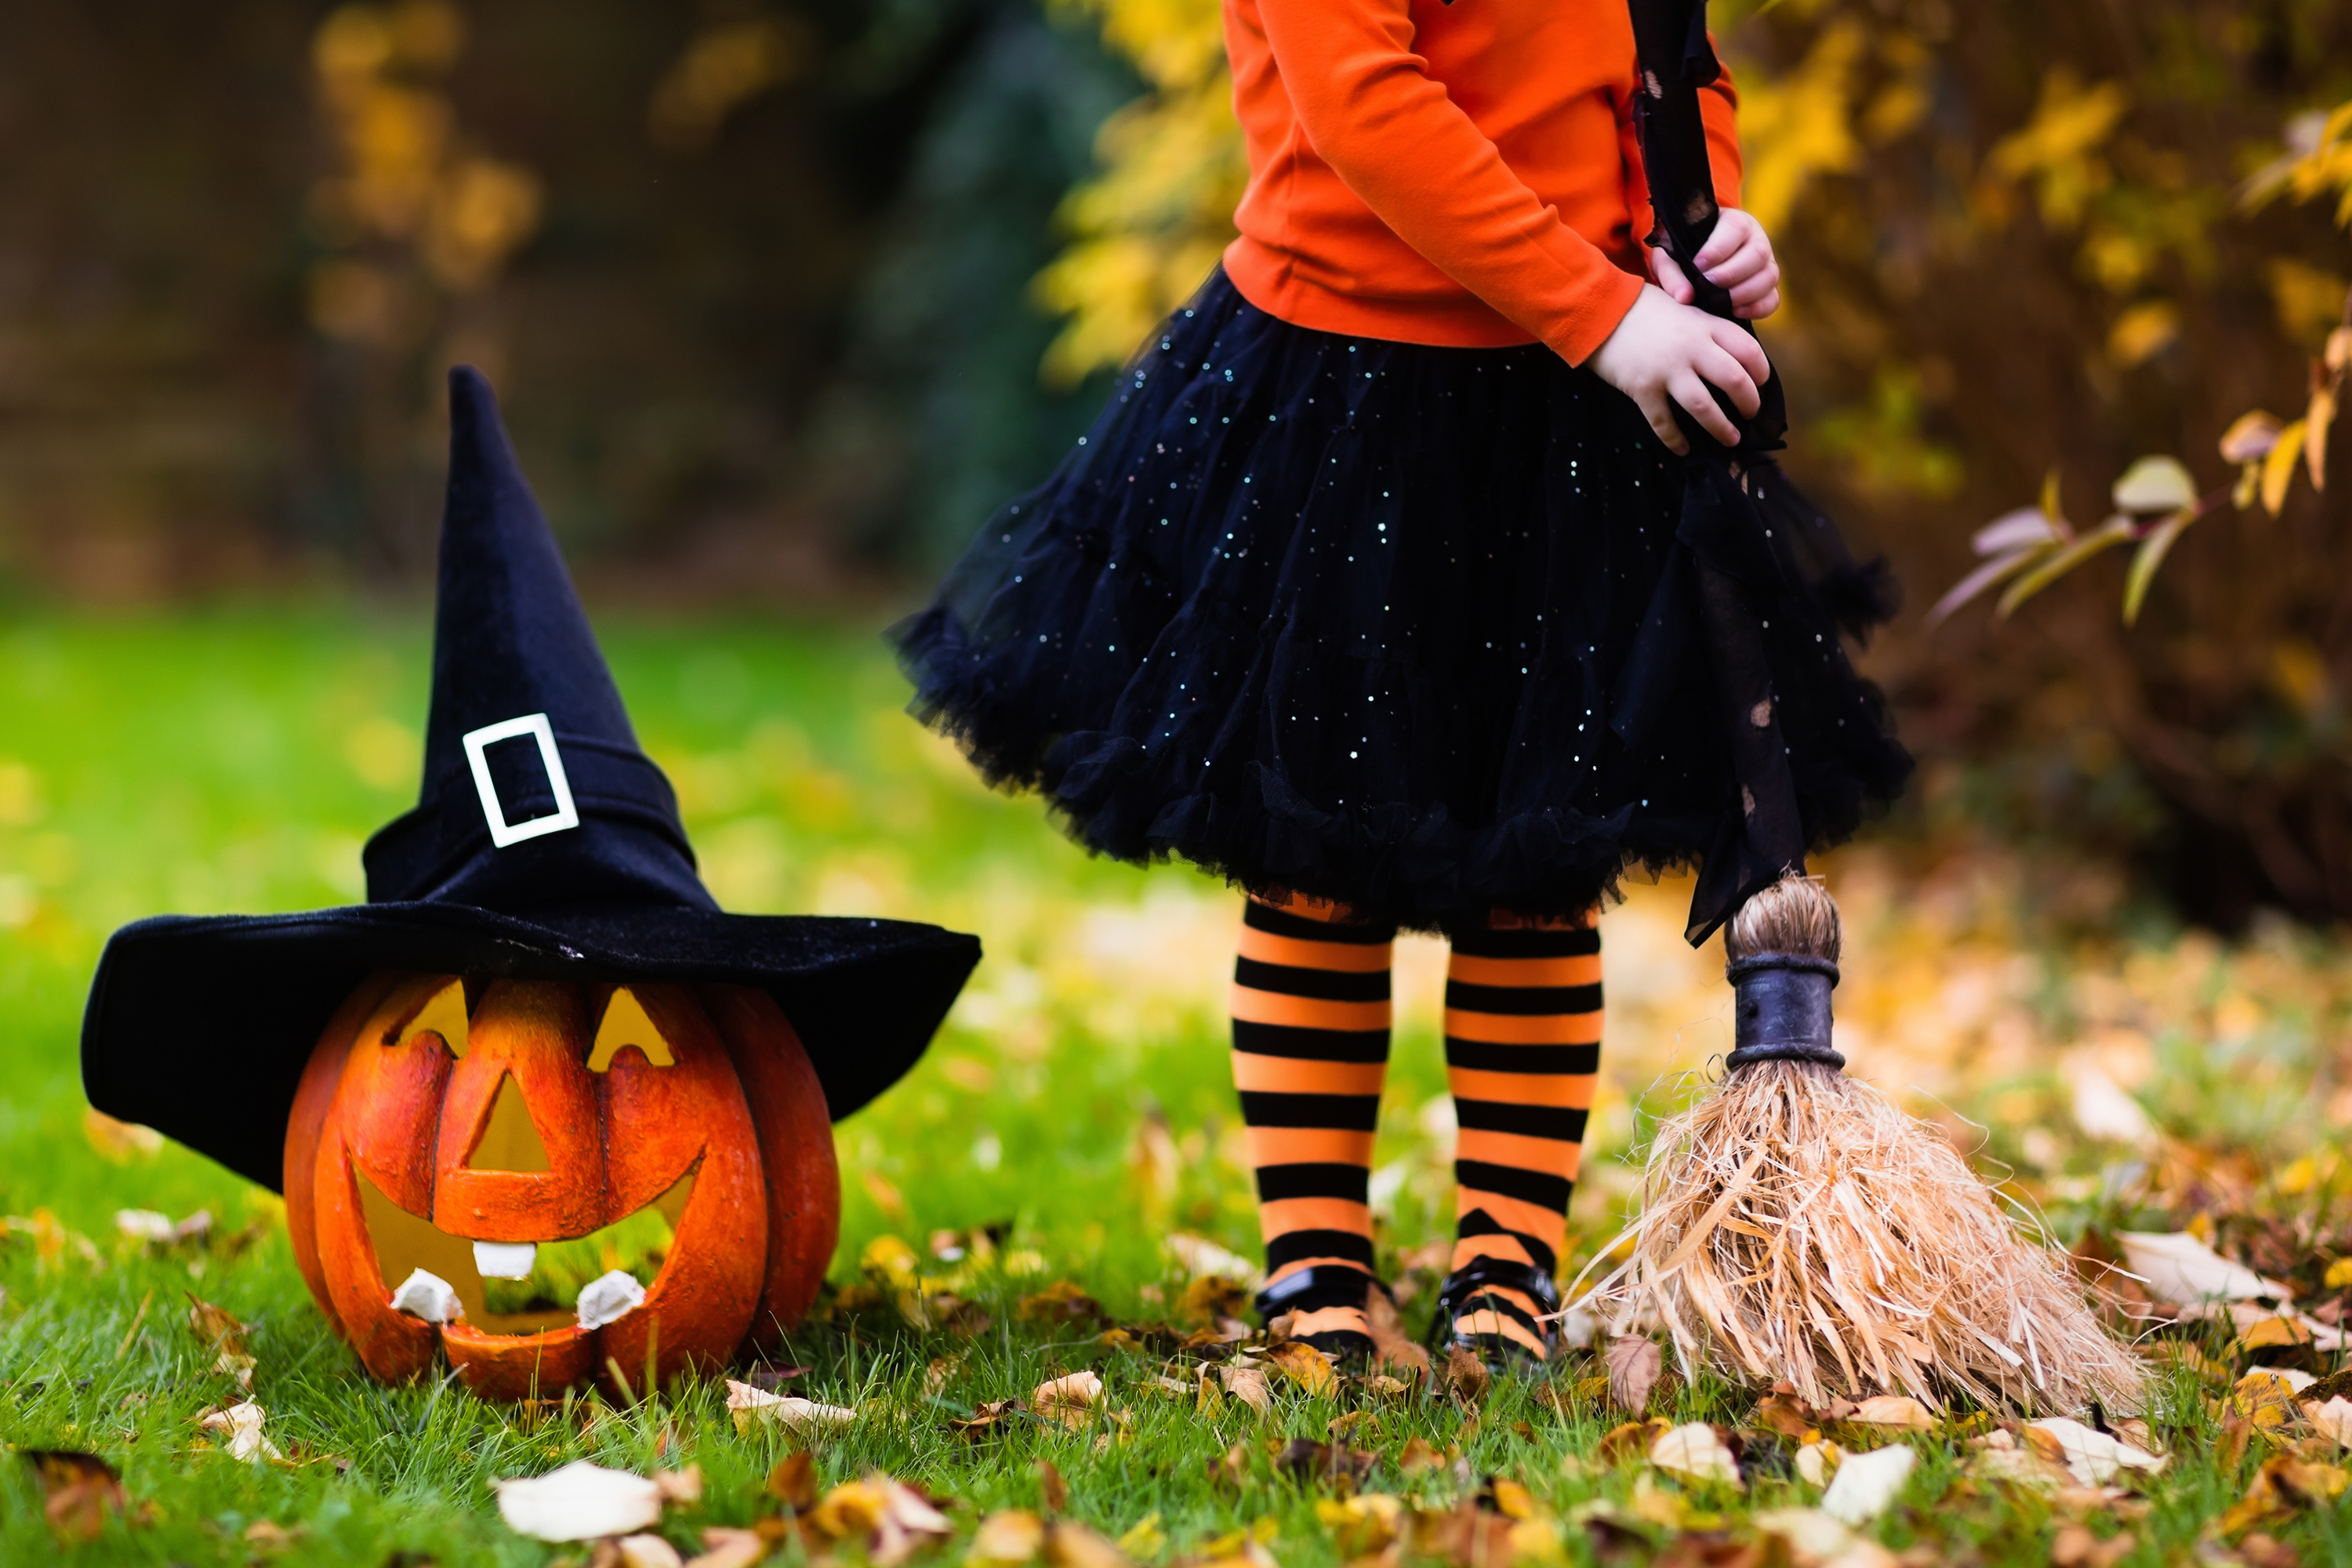 Can you guess the most popular kids' Halloween costumes of 2016?